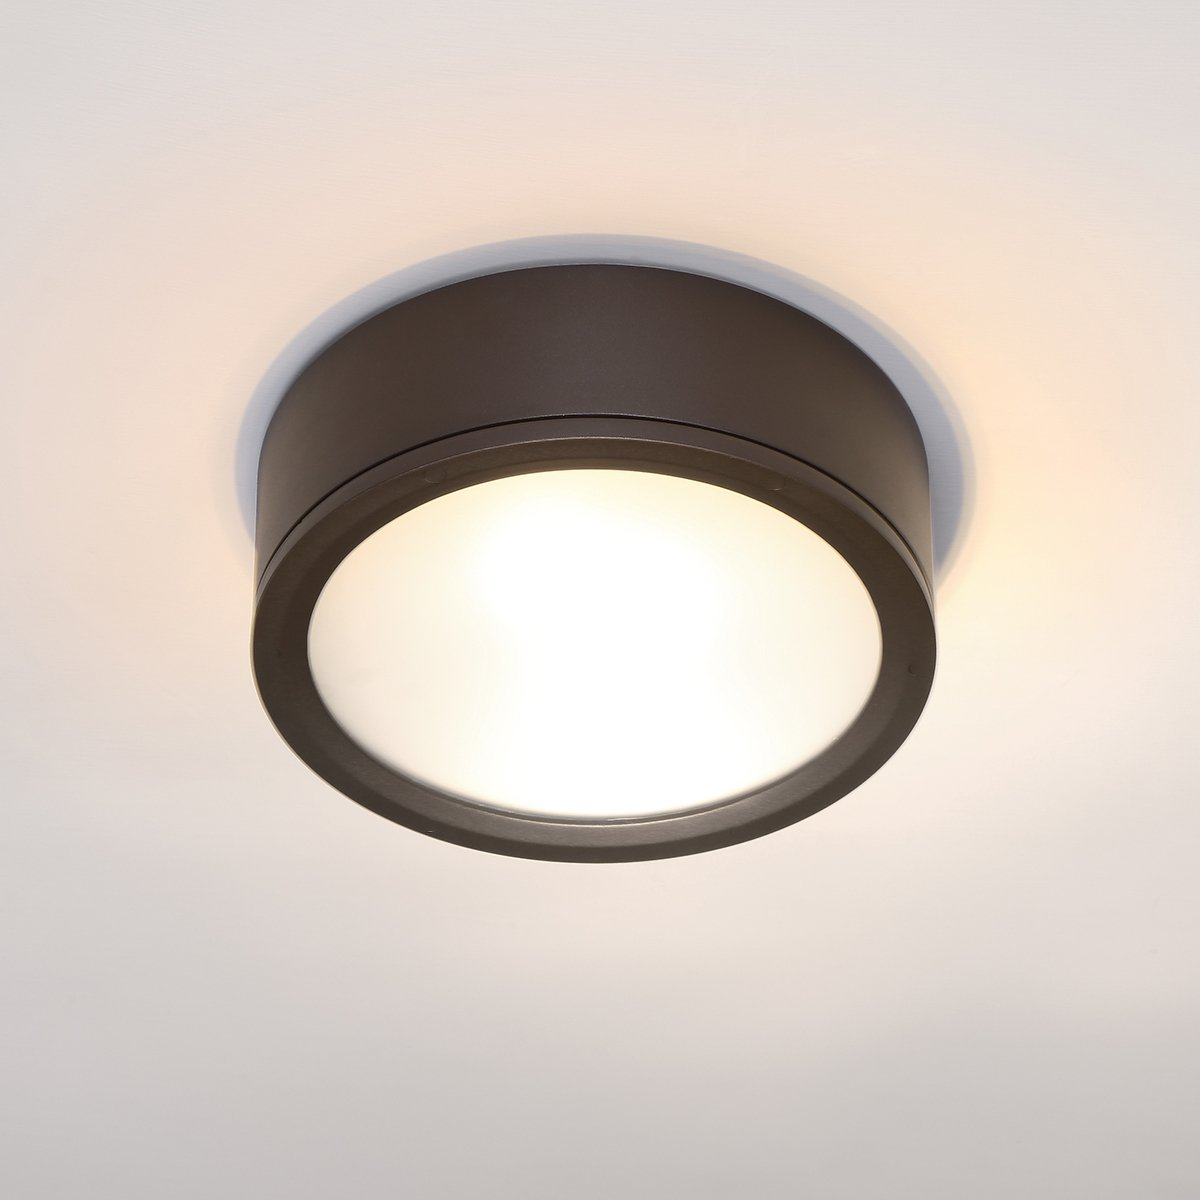 Wac lighting fm w2612 bz tube 12 outdoor led flush mount large wac lighting fm w2612 bz tube 12 outdoor led flush mount large whitebronze amazon mozeypictures Image collections